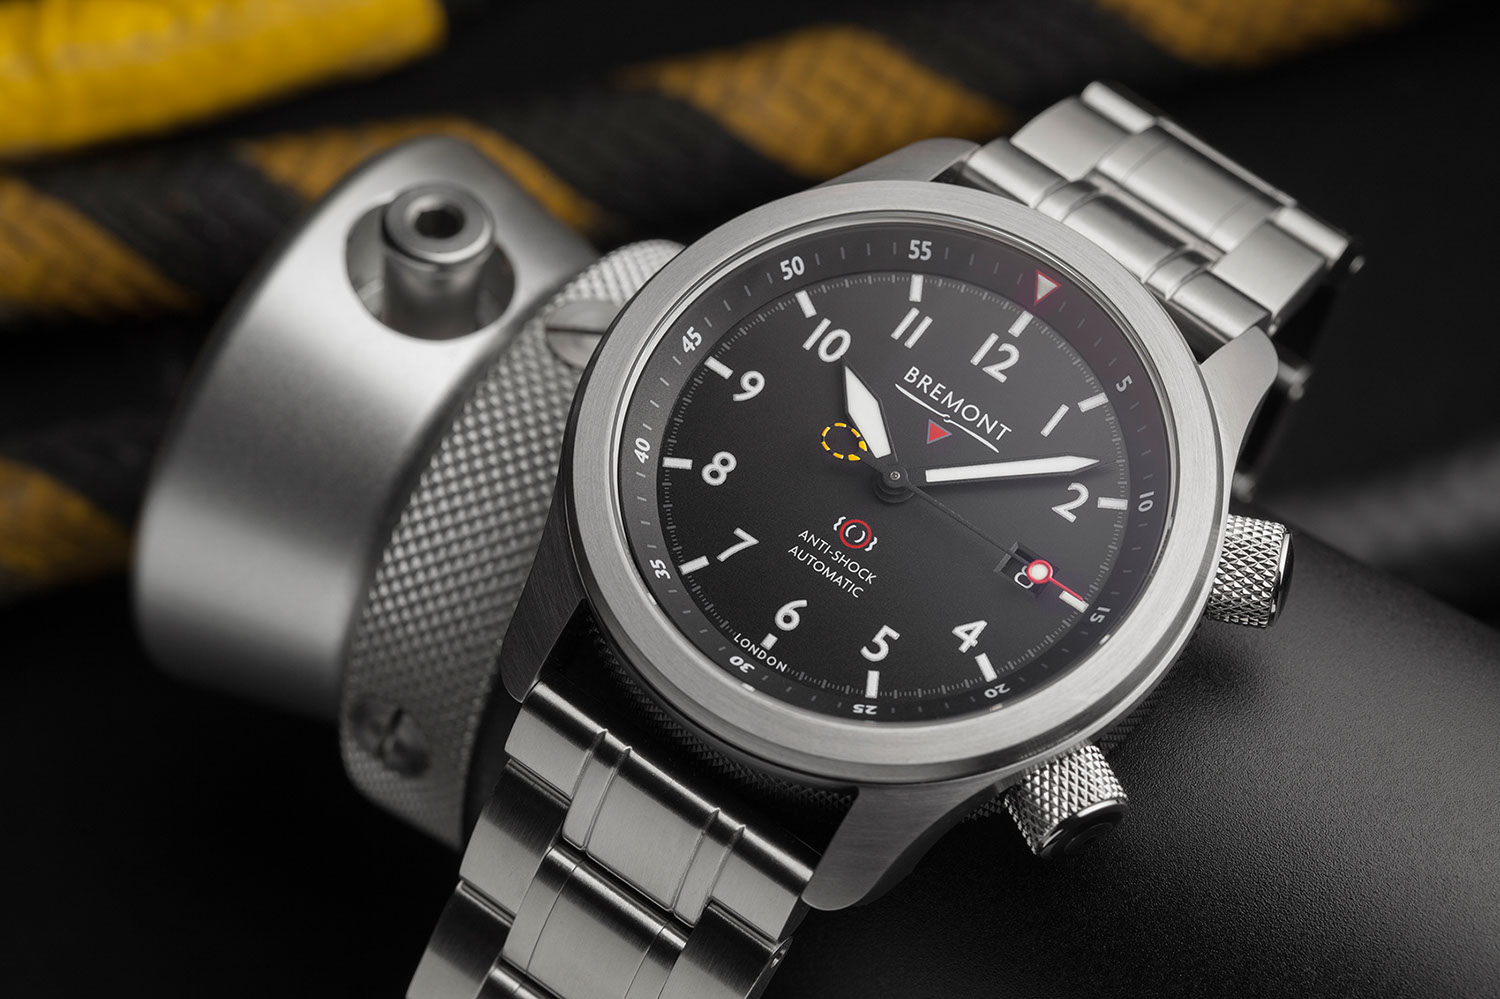 Bremont's updated 2020 MBII in the black dial variation on a metal bracelet